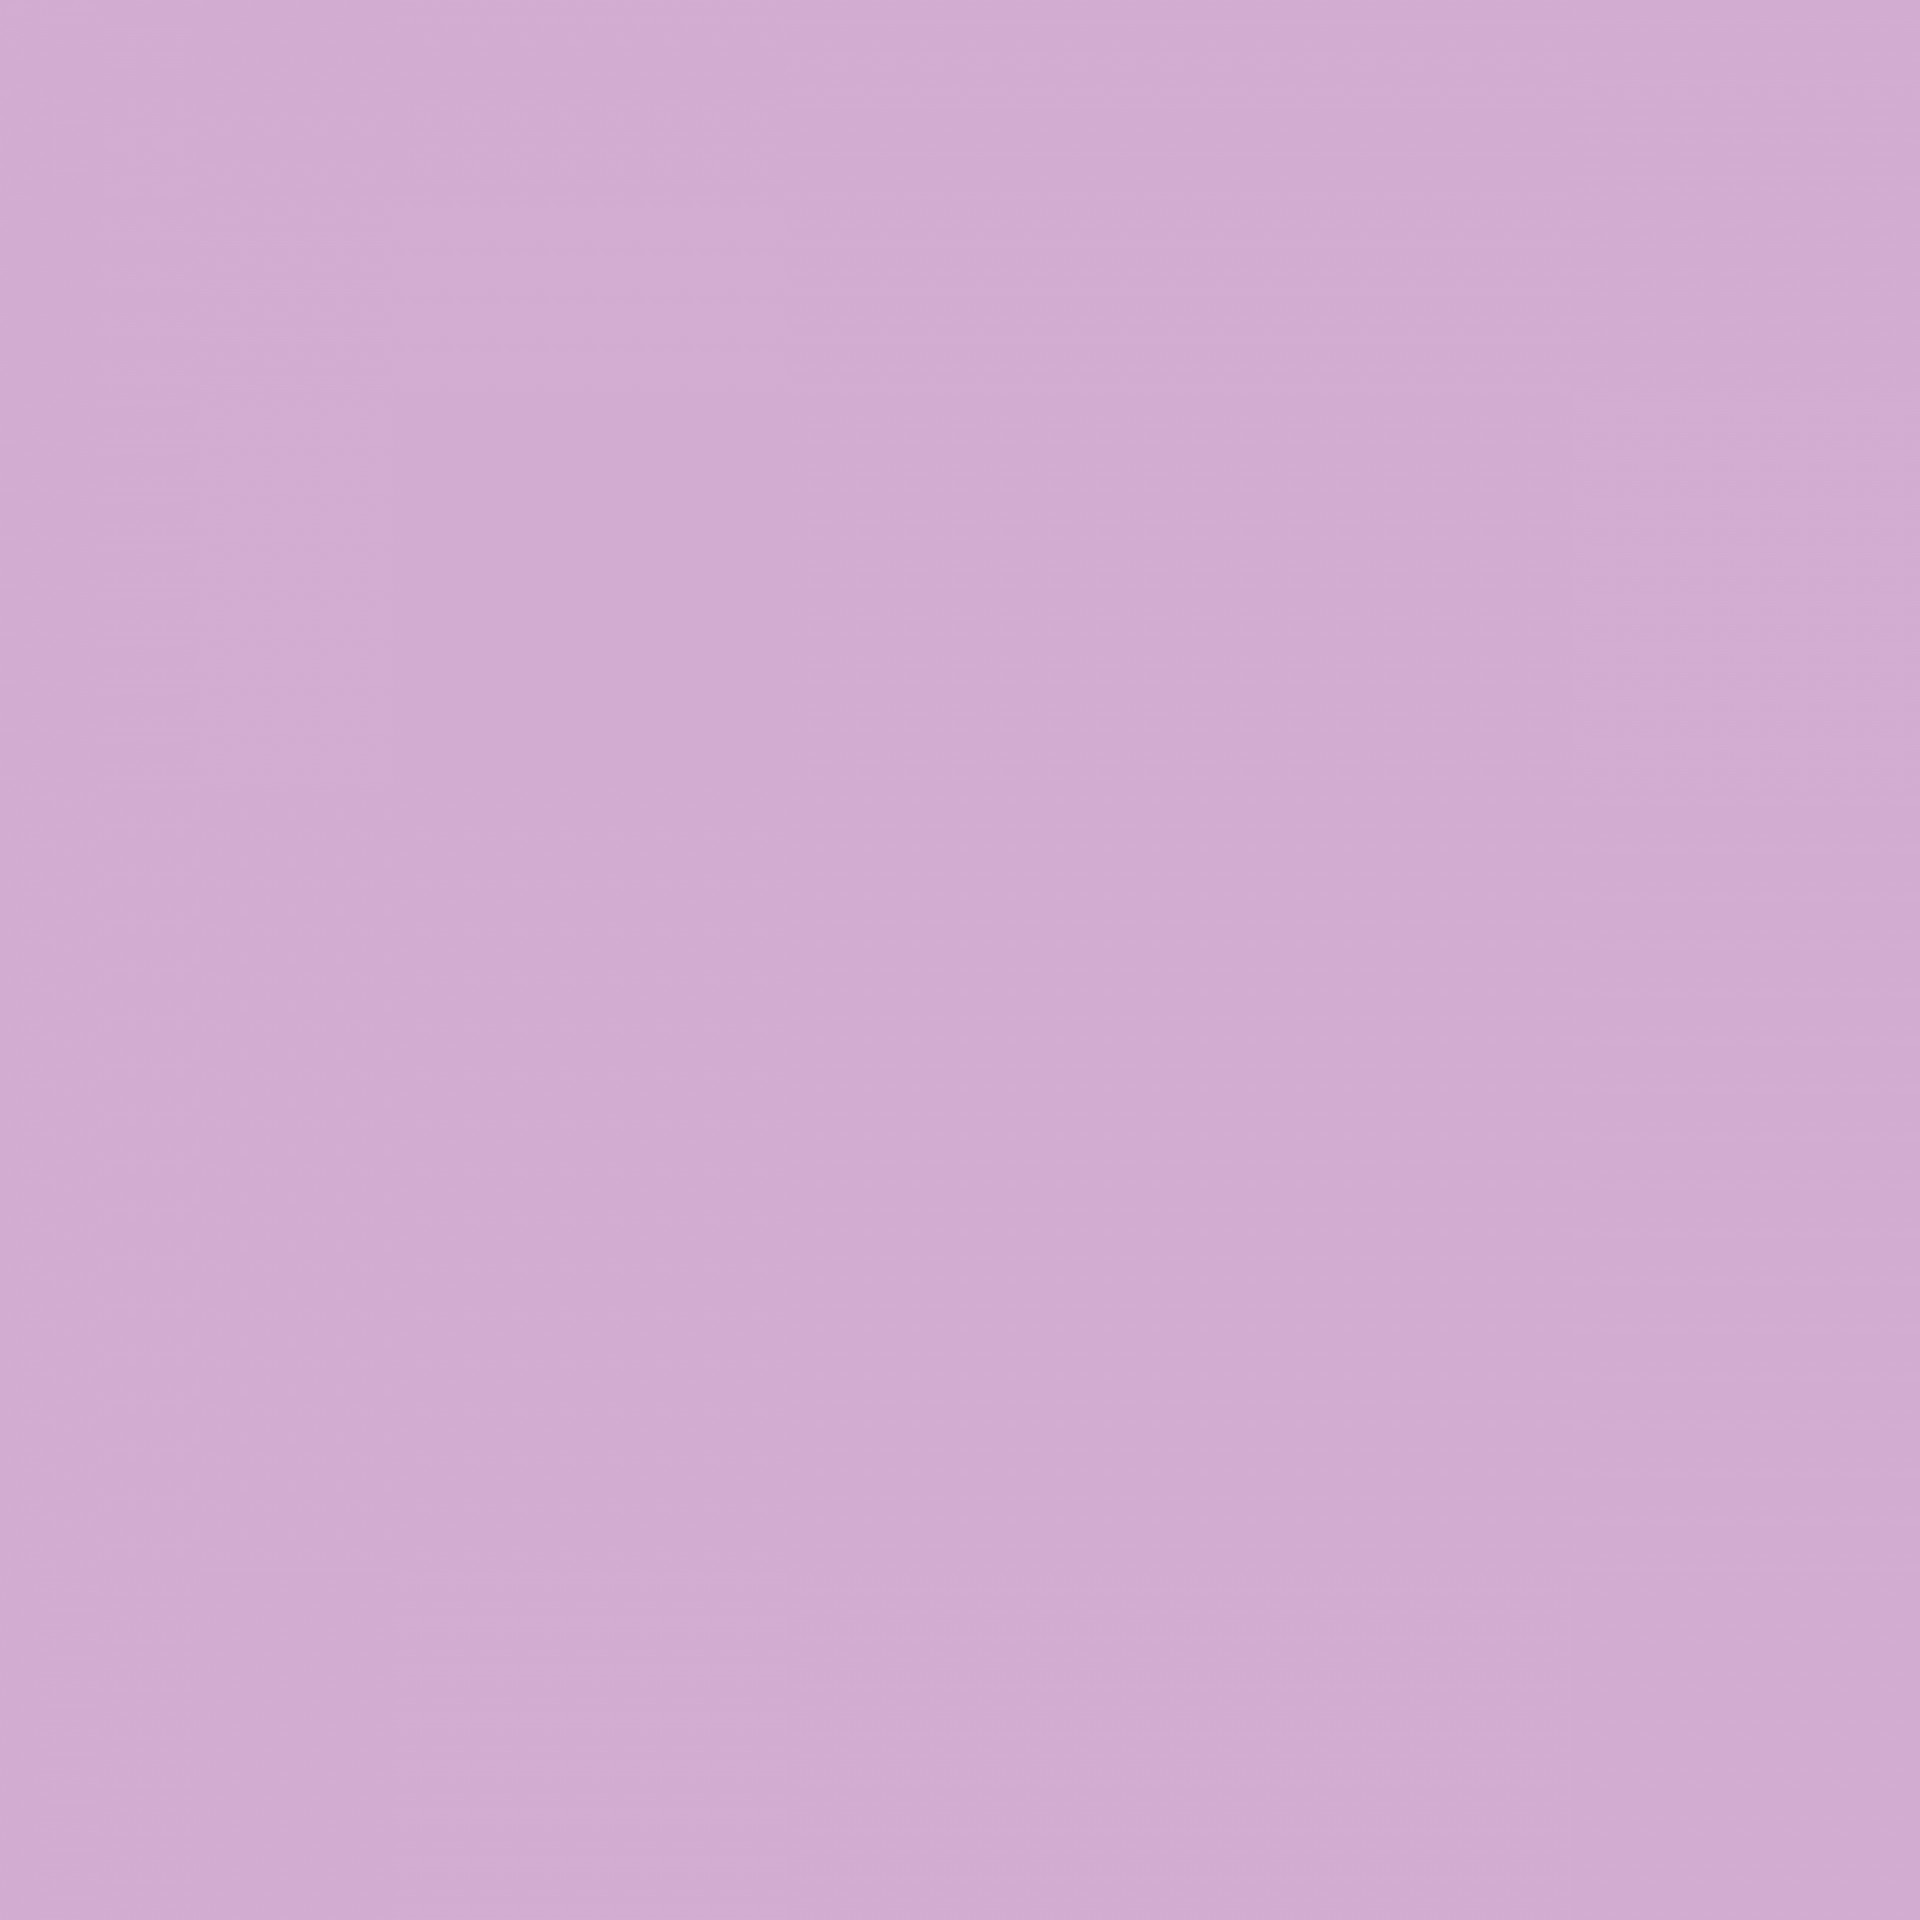 1920x1920 Lavender, Violet Background